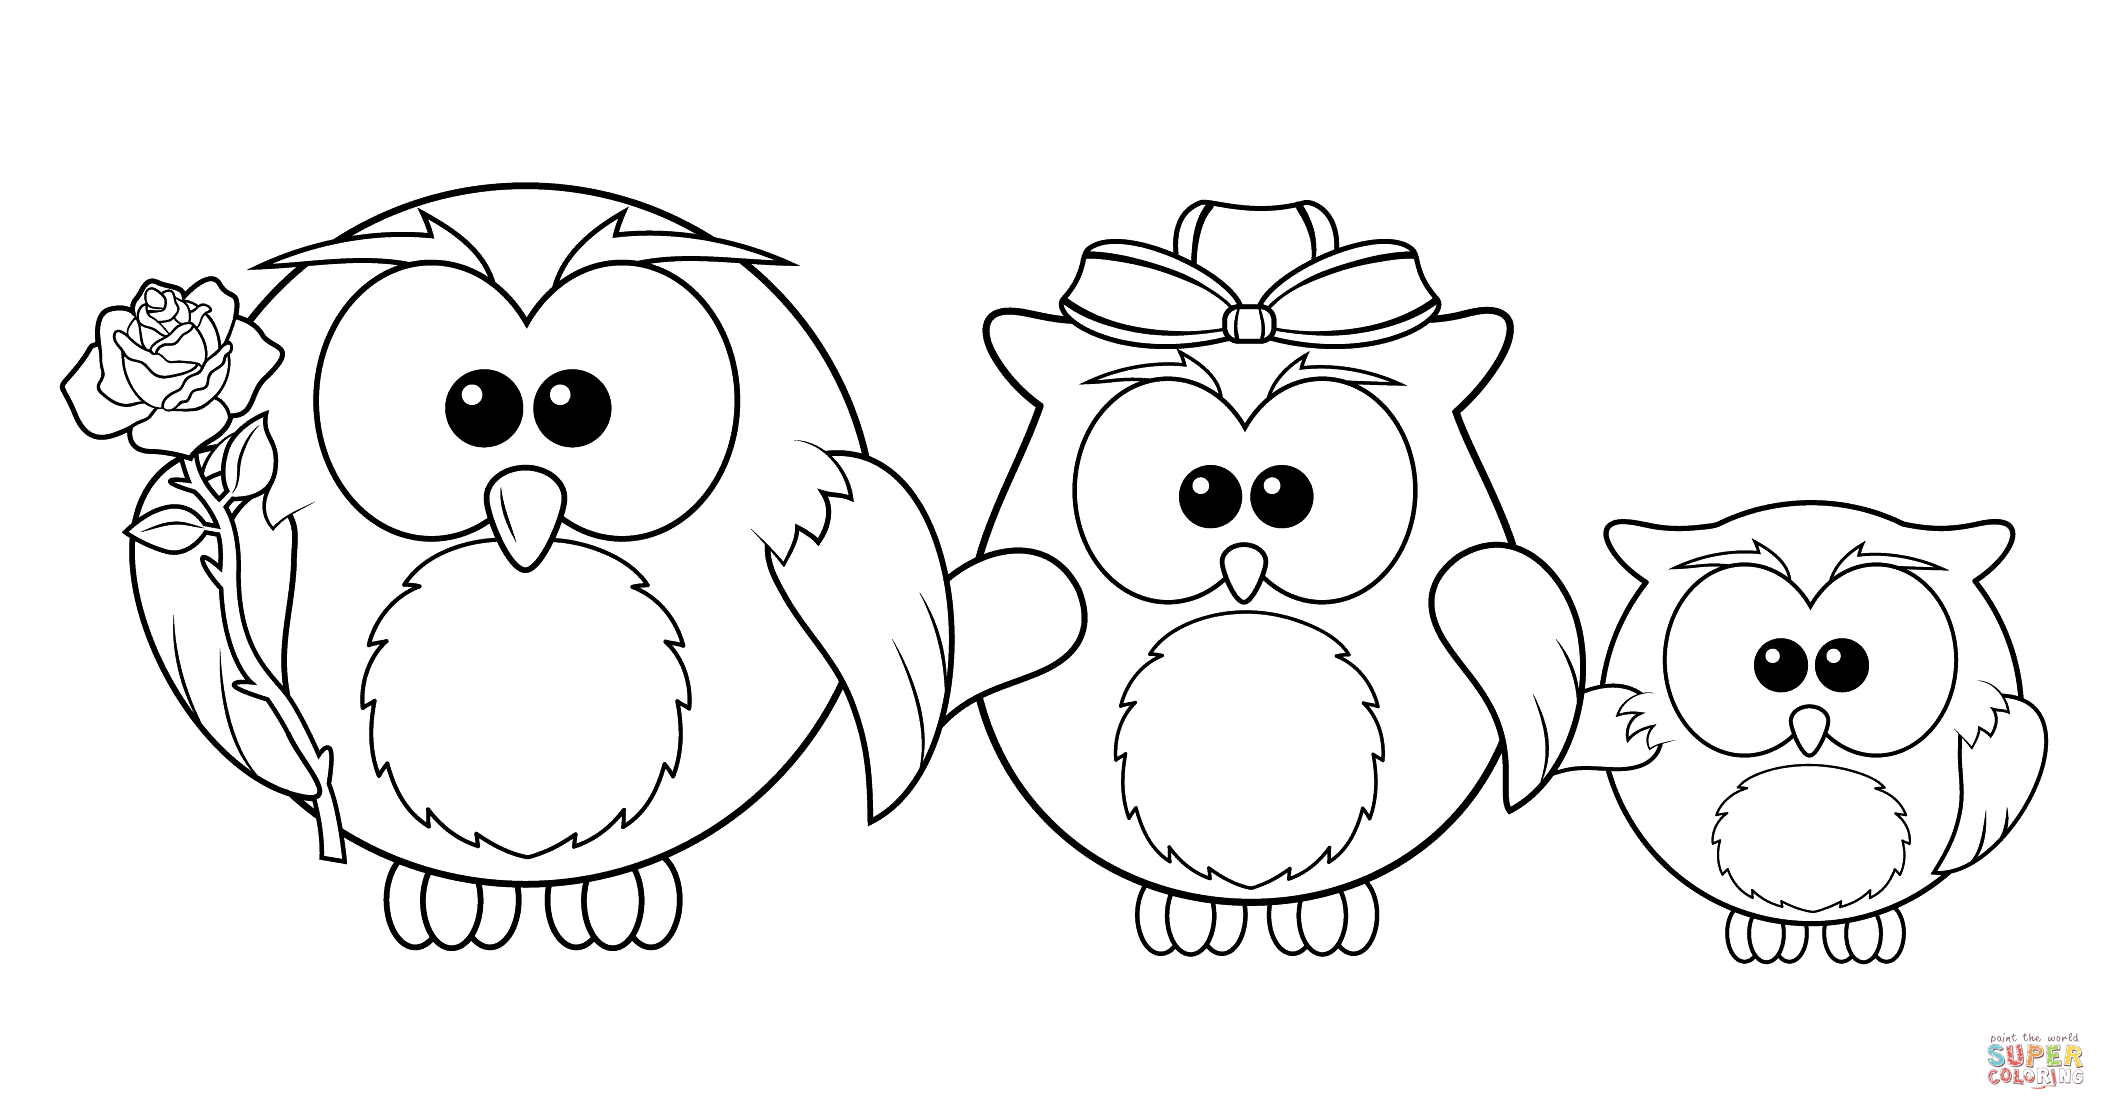 Owl coloring pages free - Owl Family Coloring Page Free Printable Coloring Pages